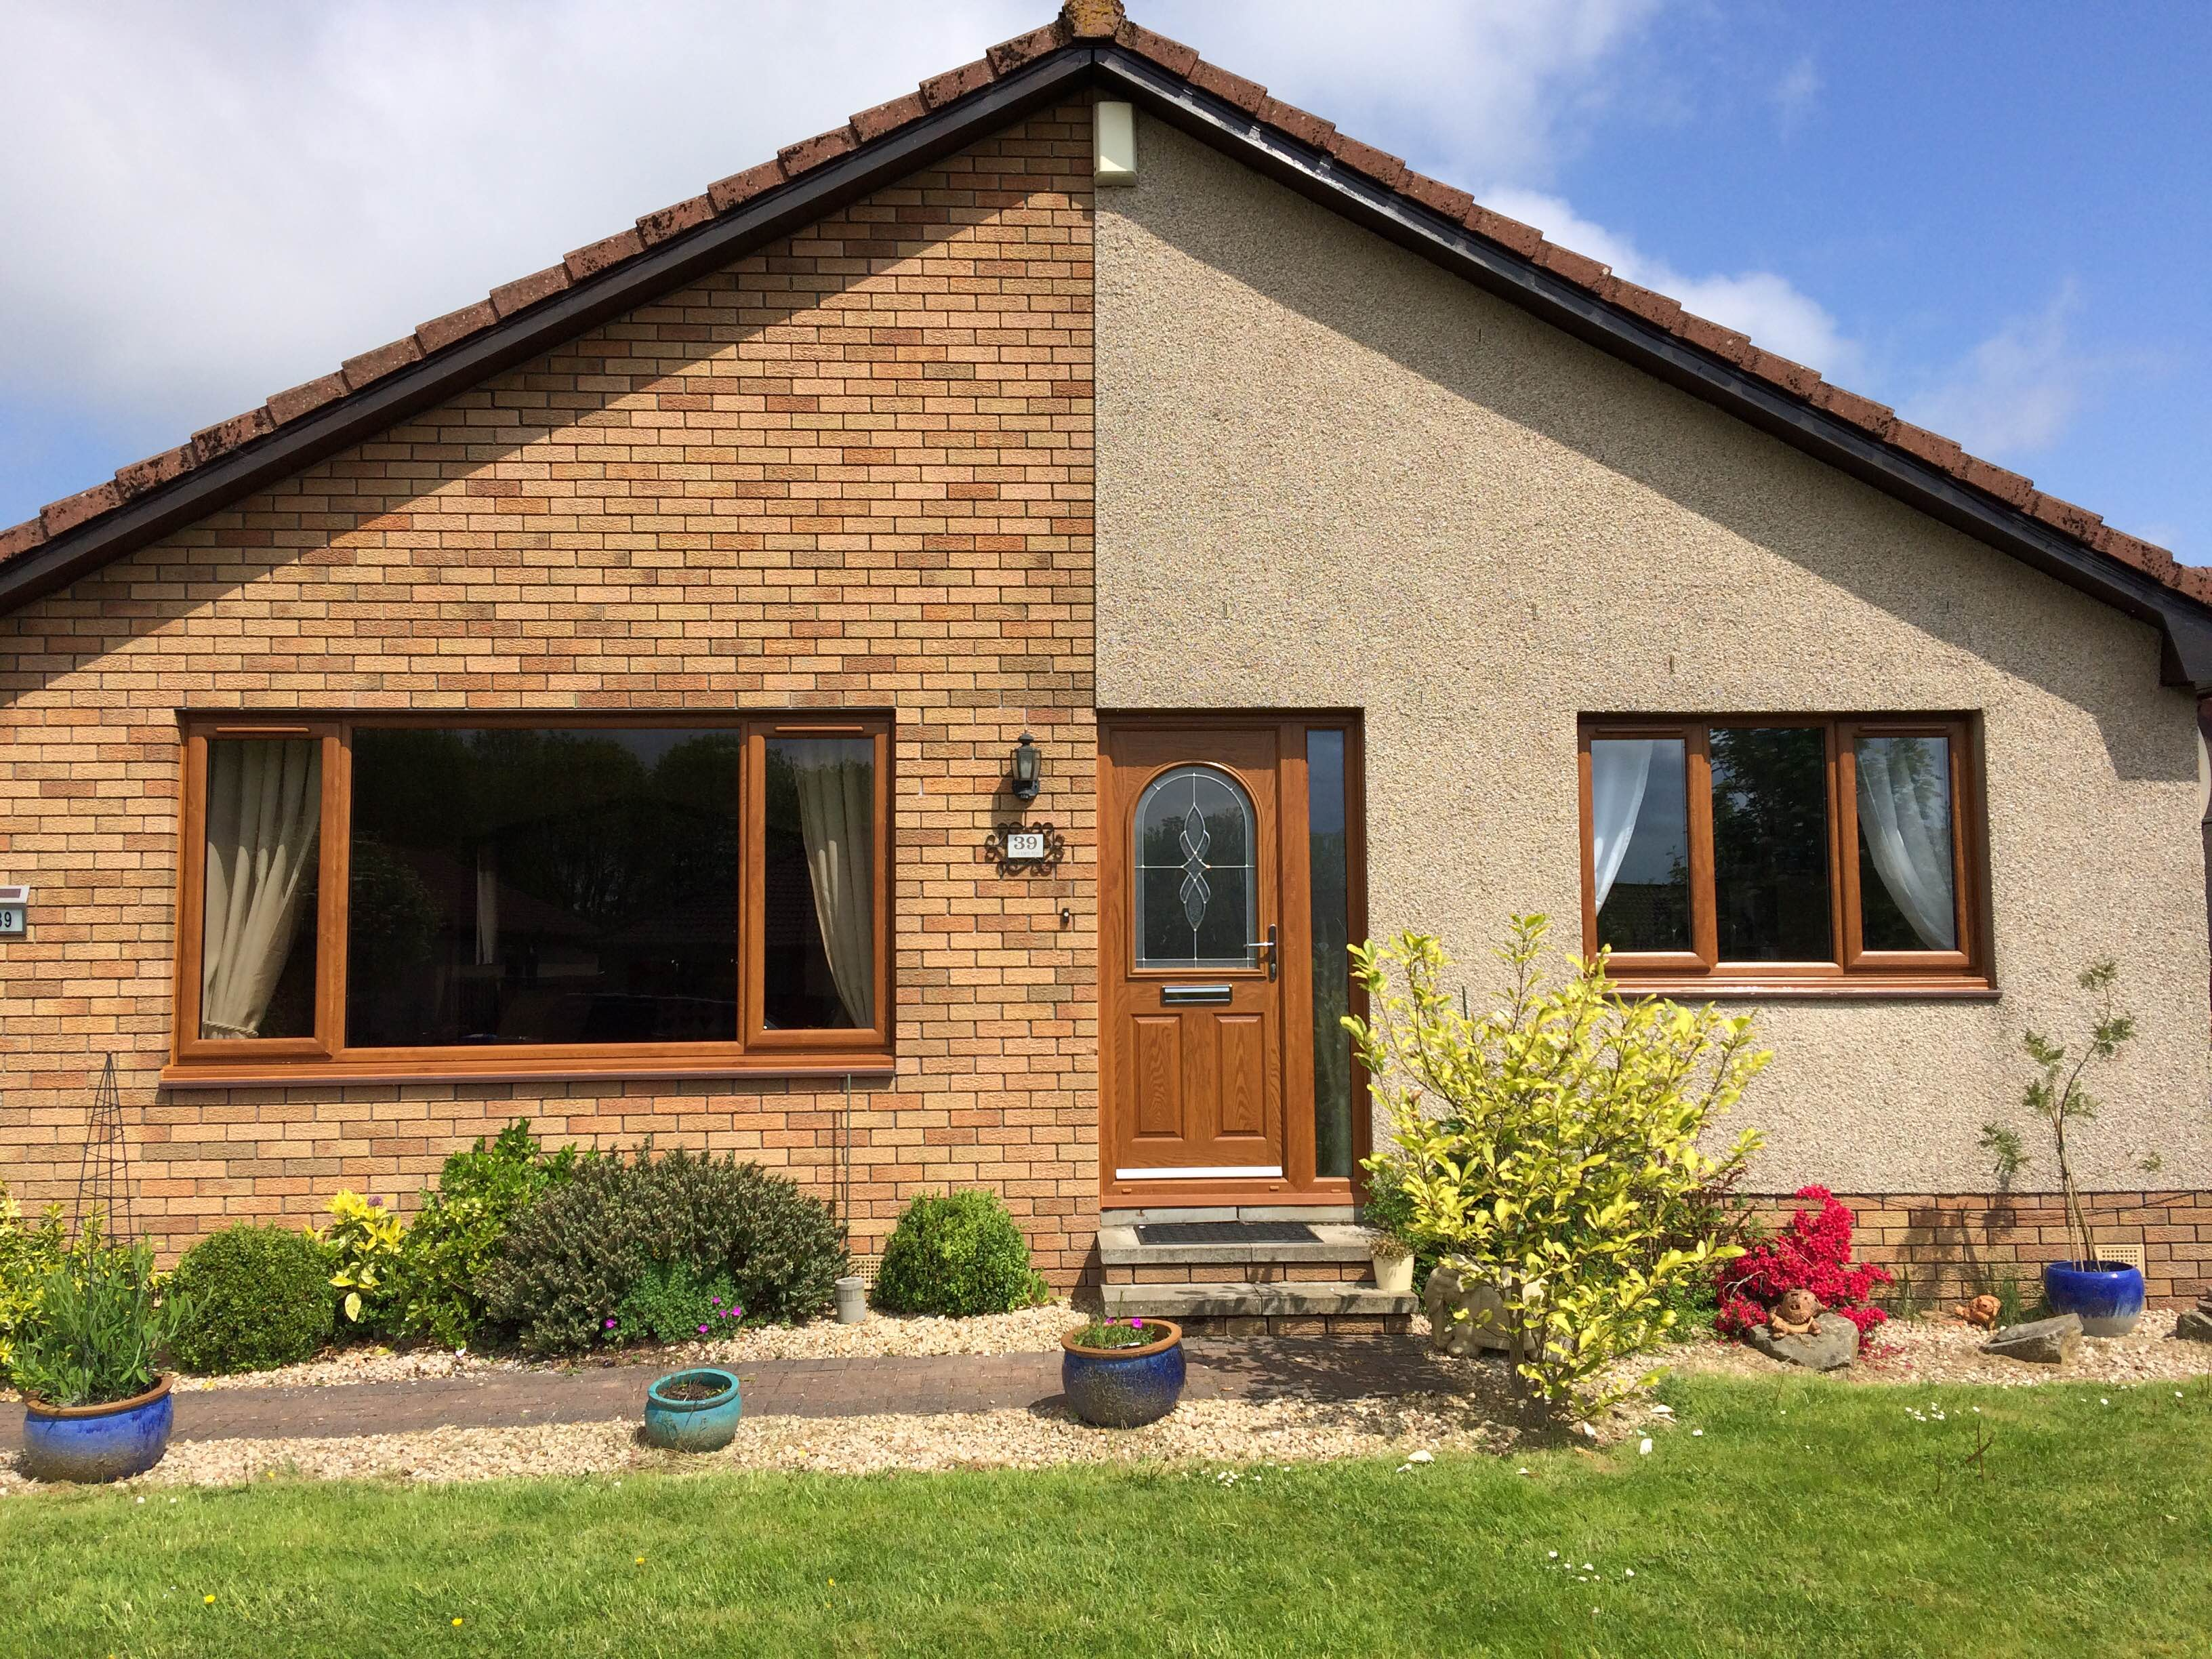 Bungalow with uPVC windows